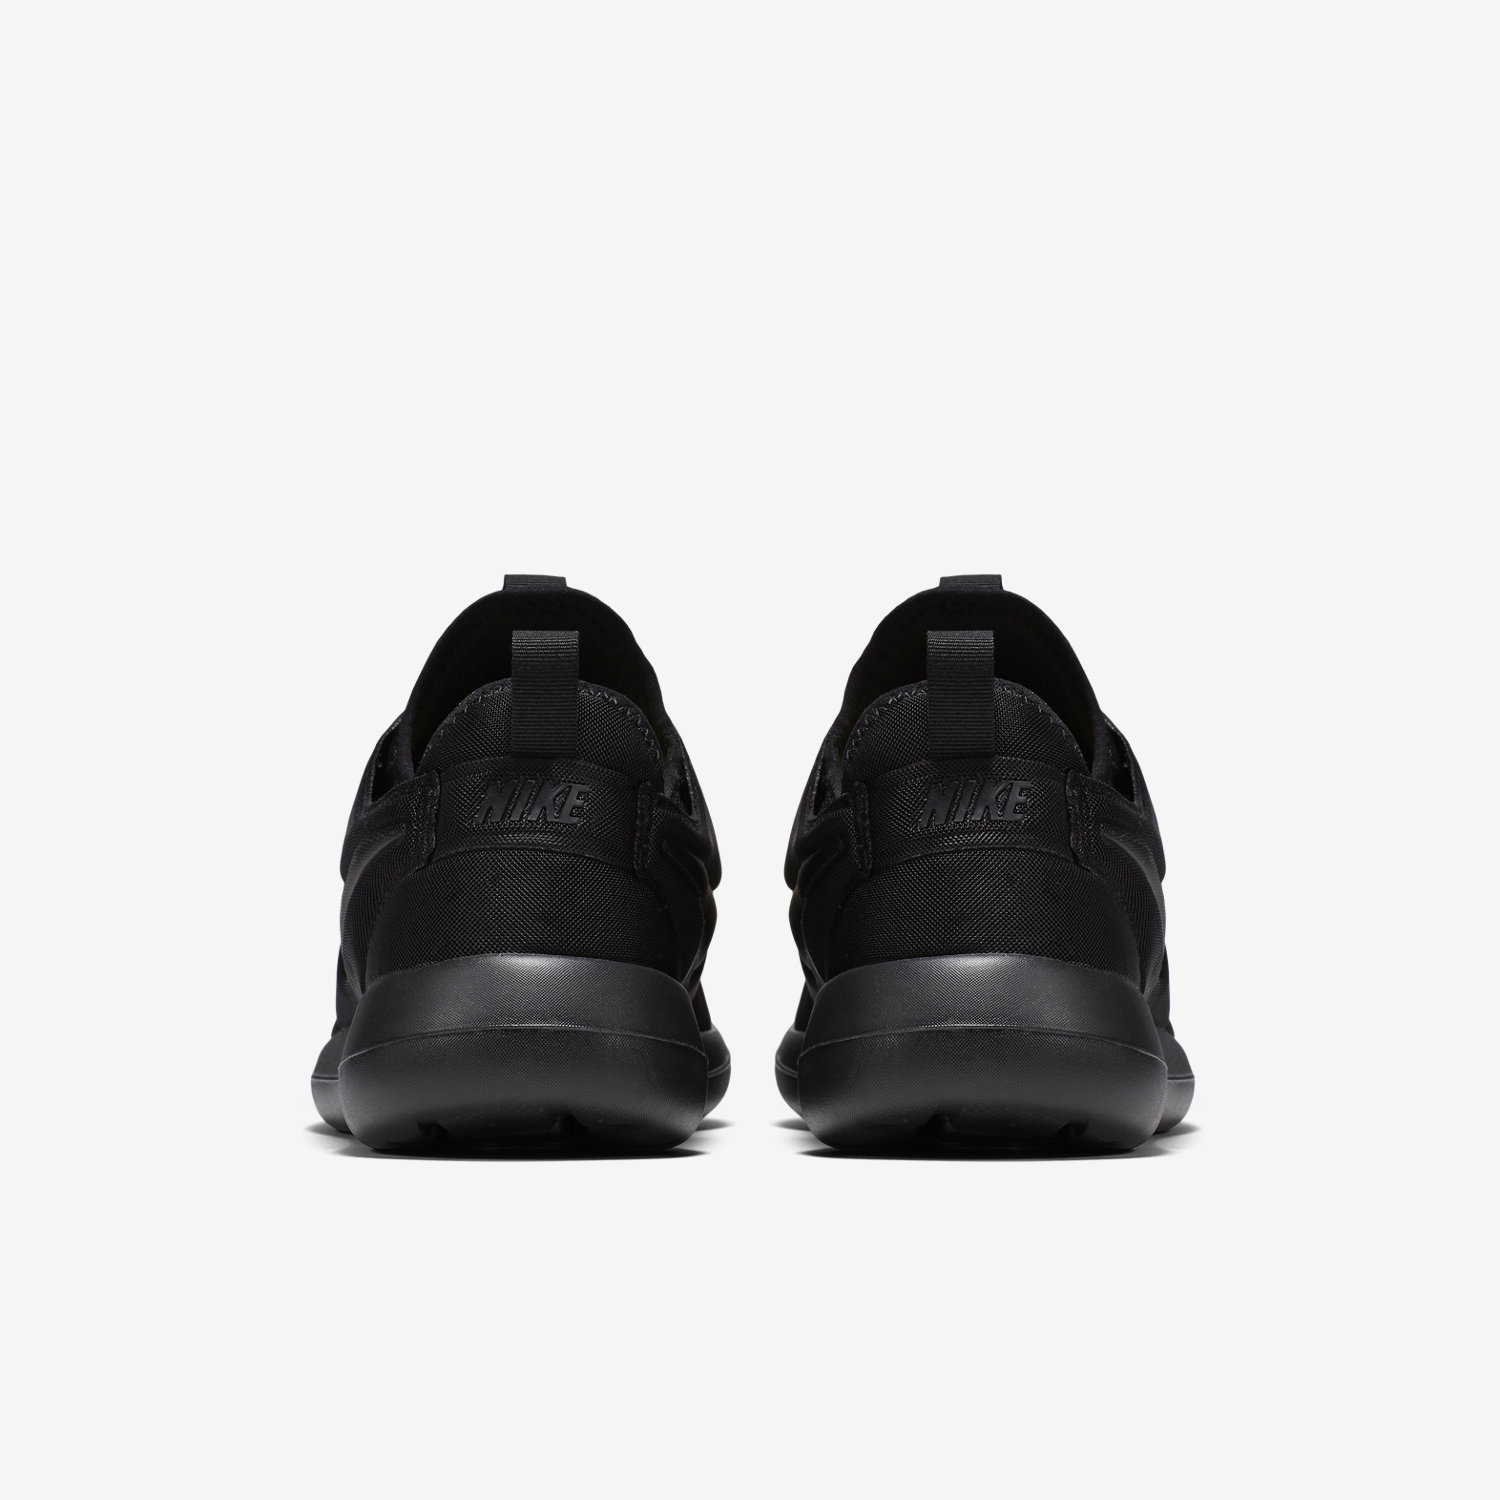 new concept 07b97 02c75 Cheap Nike Sportswear ROSHE TWO Trainers wolf gray   white   cool. Nike  Roshe Run Two Flyknit 365 Triple Black On feet Video at Exclucity ...